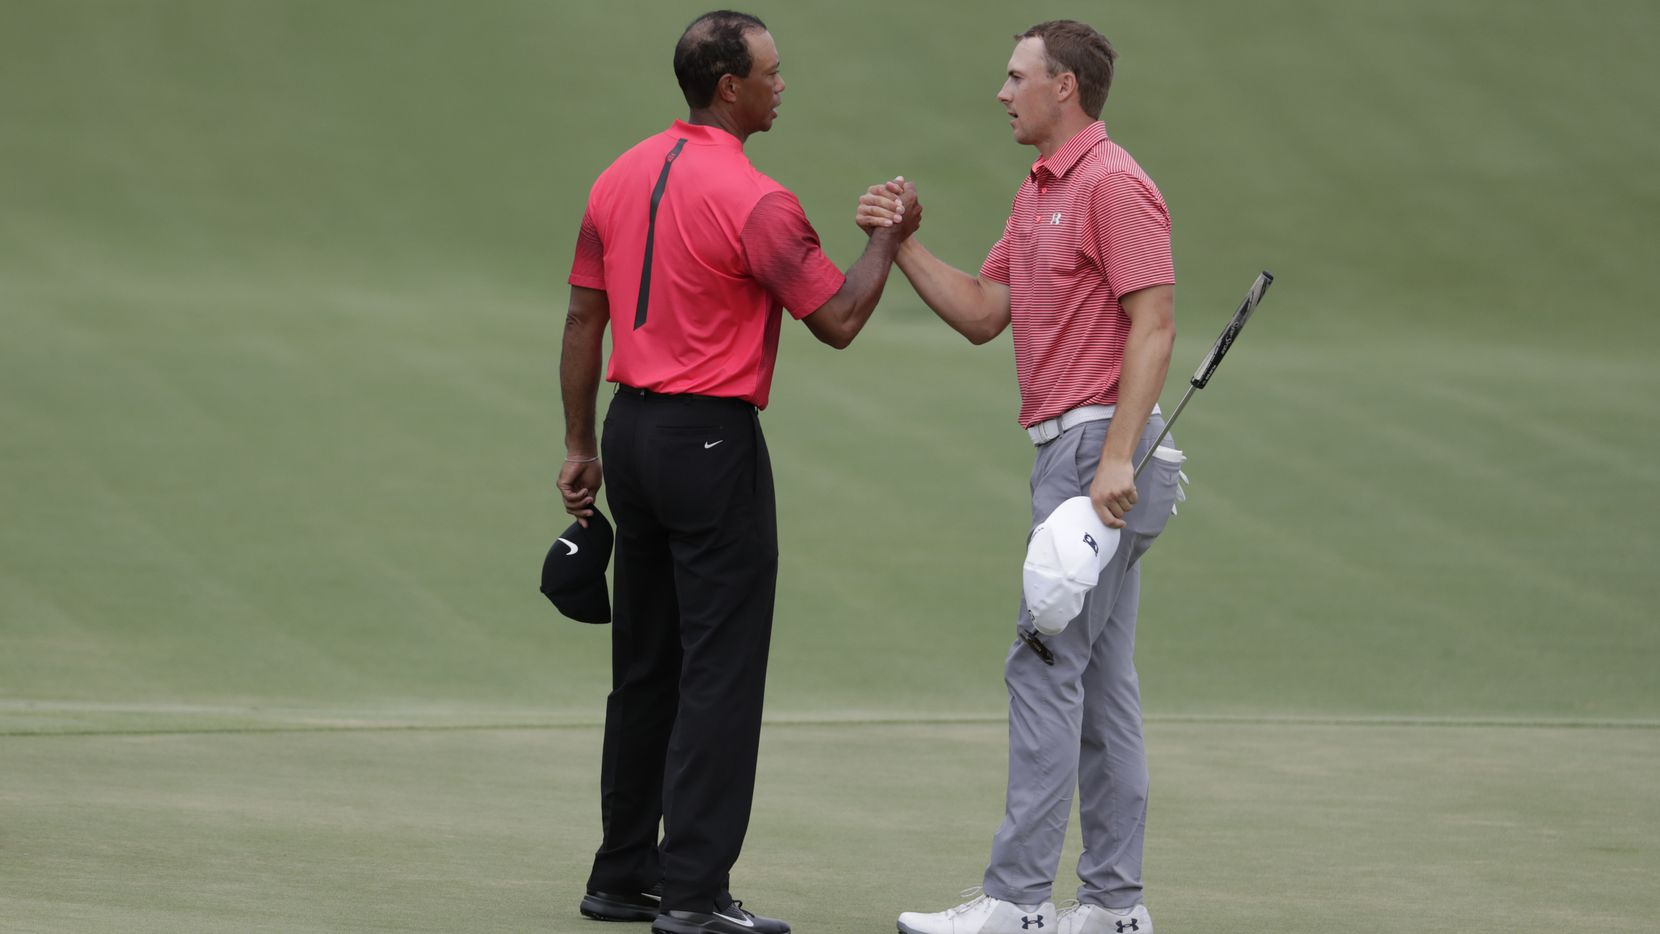 Tiger Woods, left, shakes hands with Jordan Spieth after the final round of the Players Championship golf tournament, Sunday, May 13, 2018, in Ponte Vedra Beach, Fla. (AP Photo/Lynne Sladky)